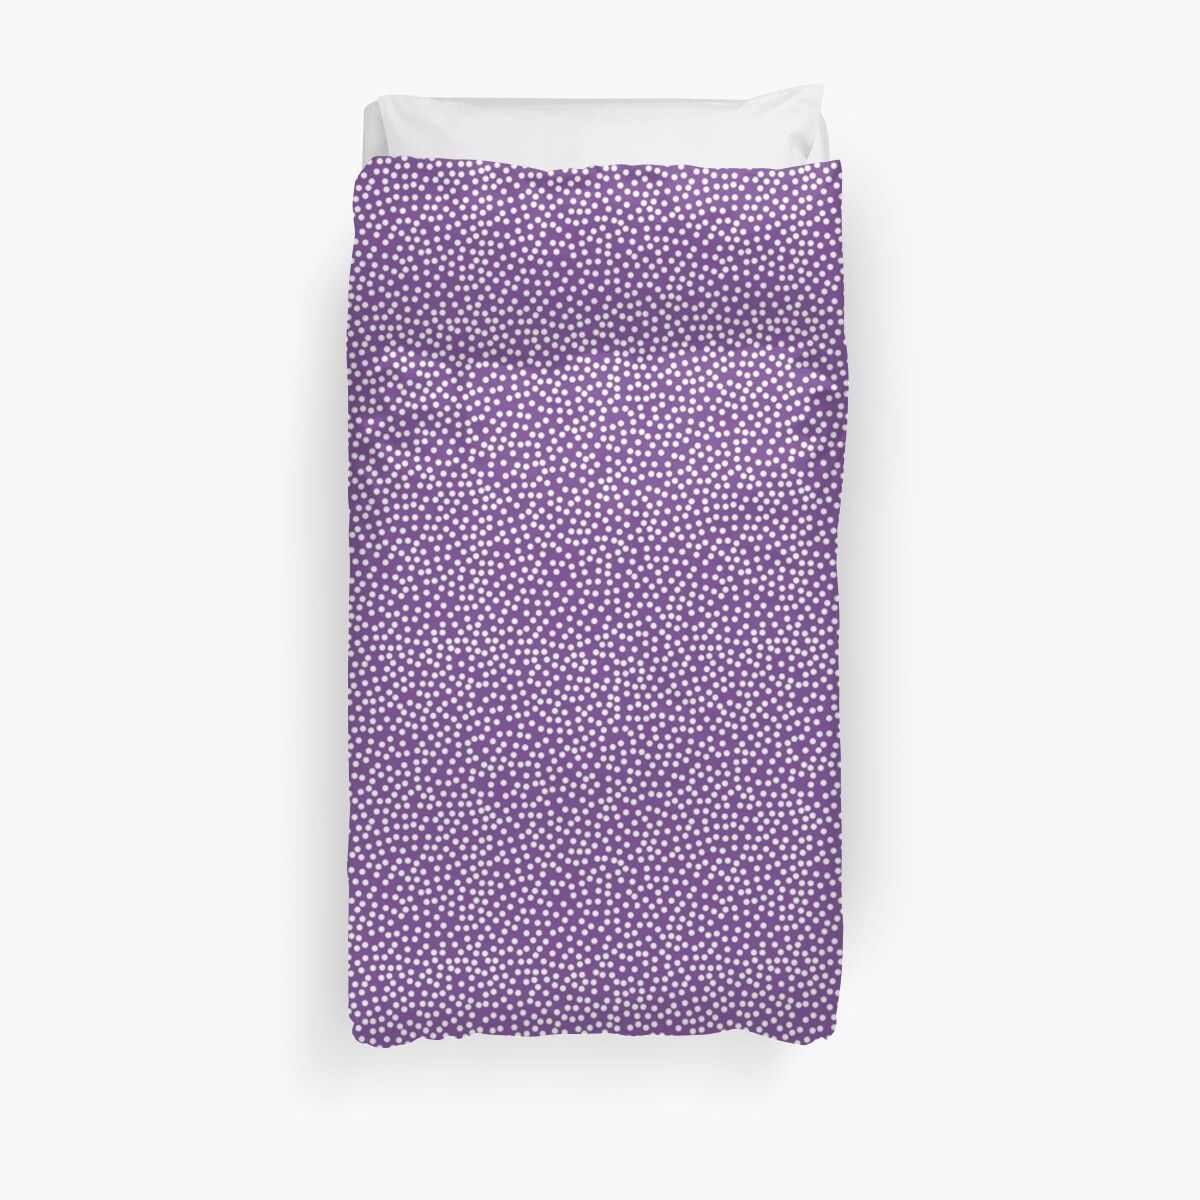 Classic baby polka dots in purple violet. by linepush